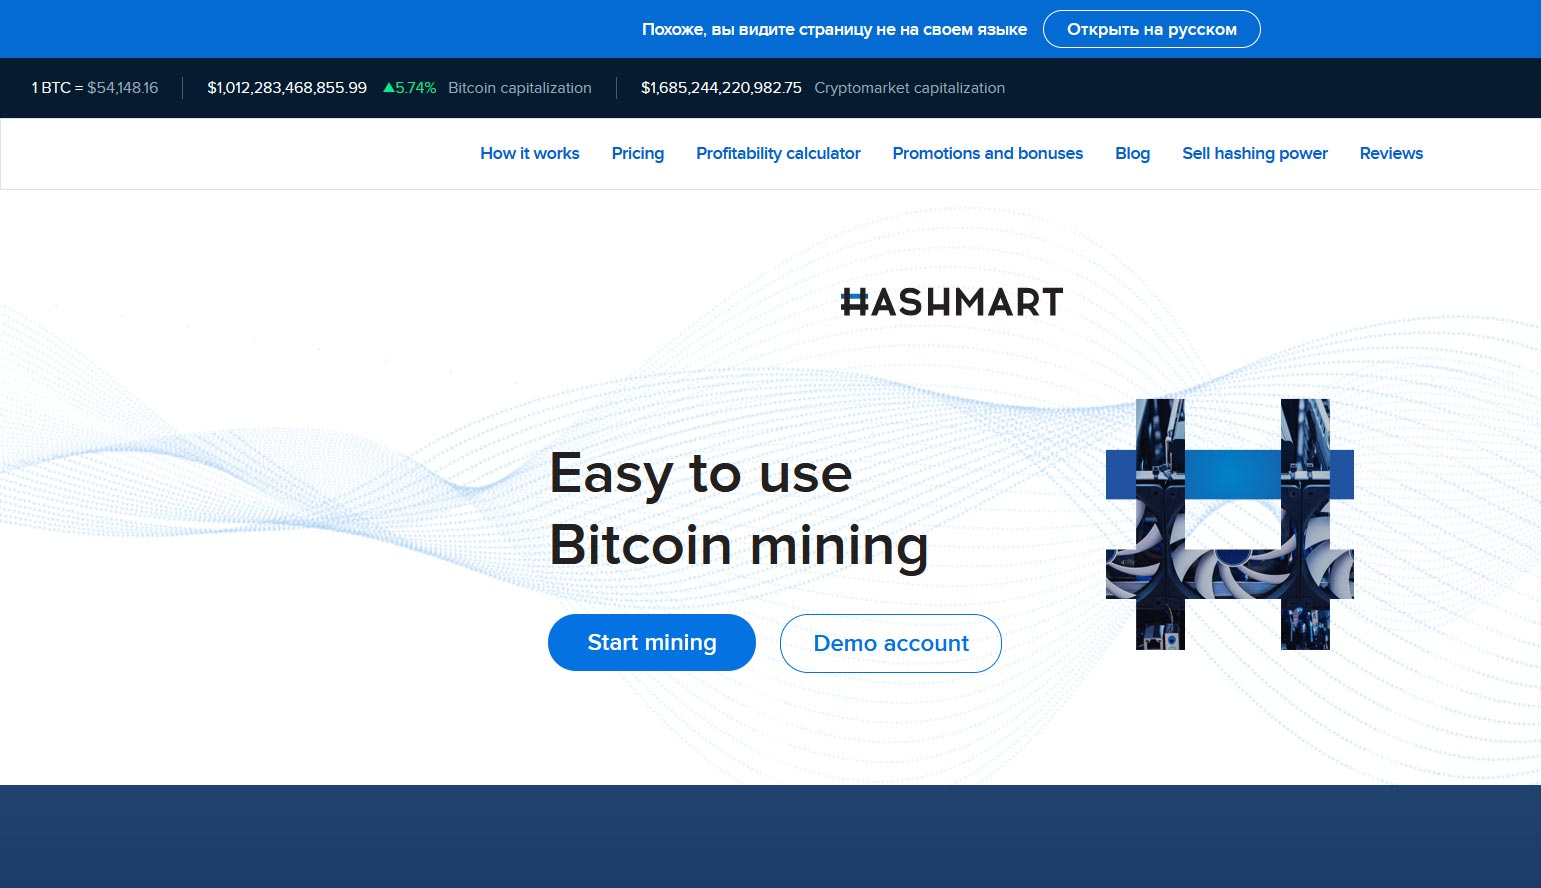 Hashmart cloud mining review